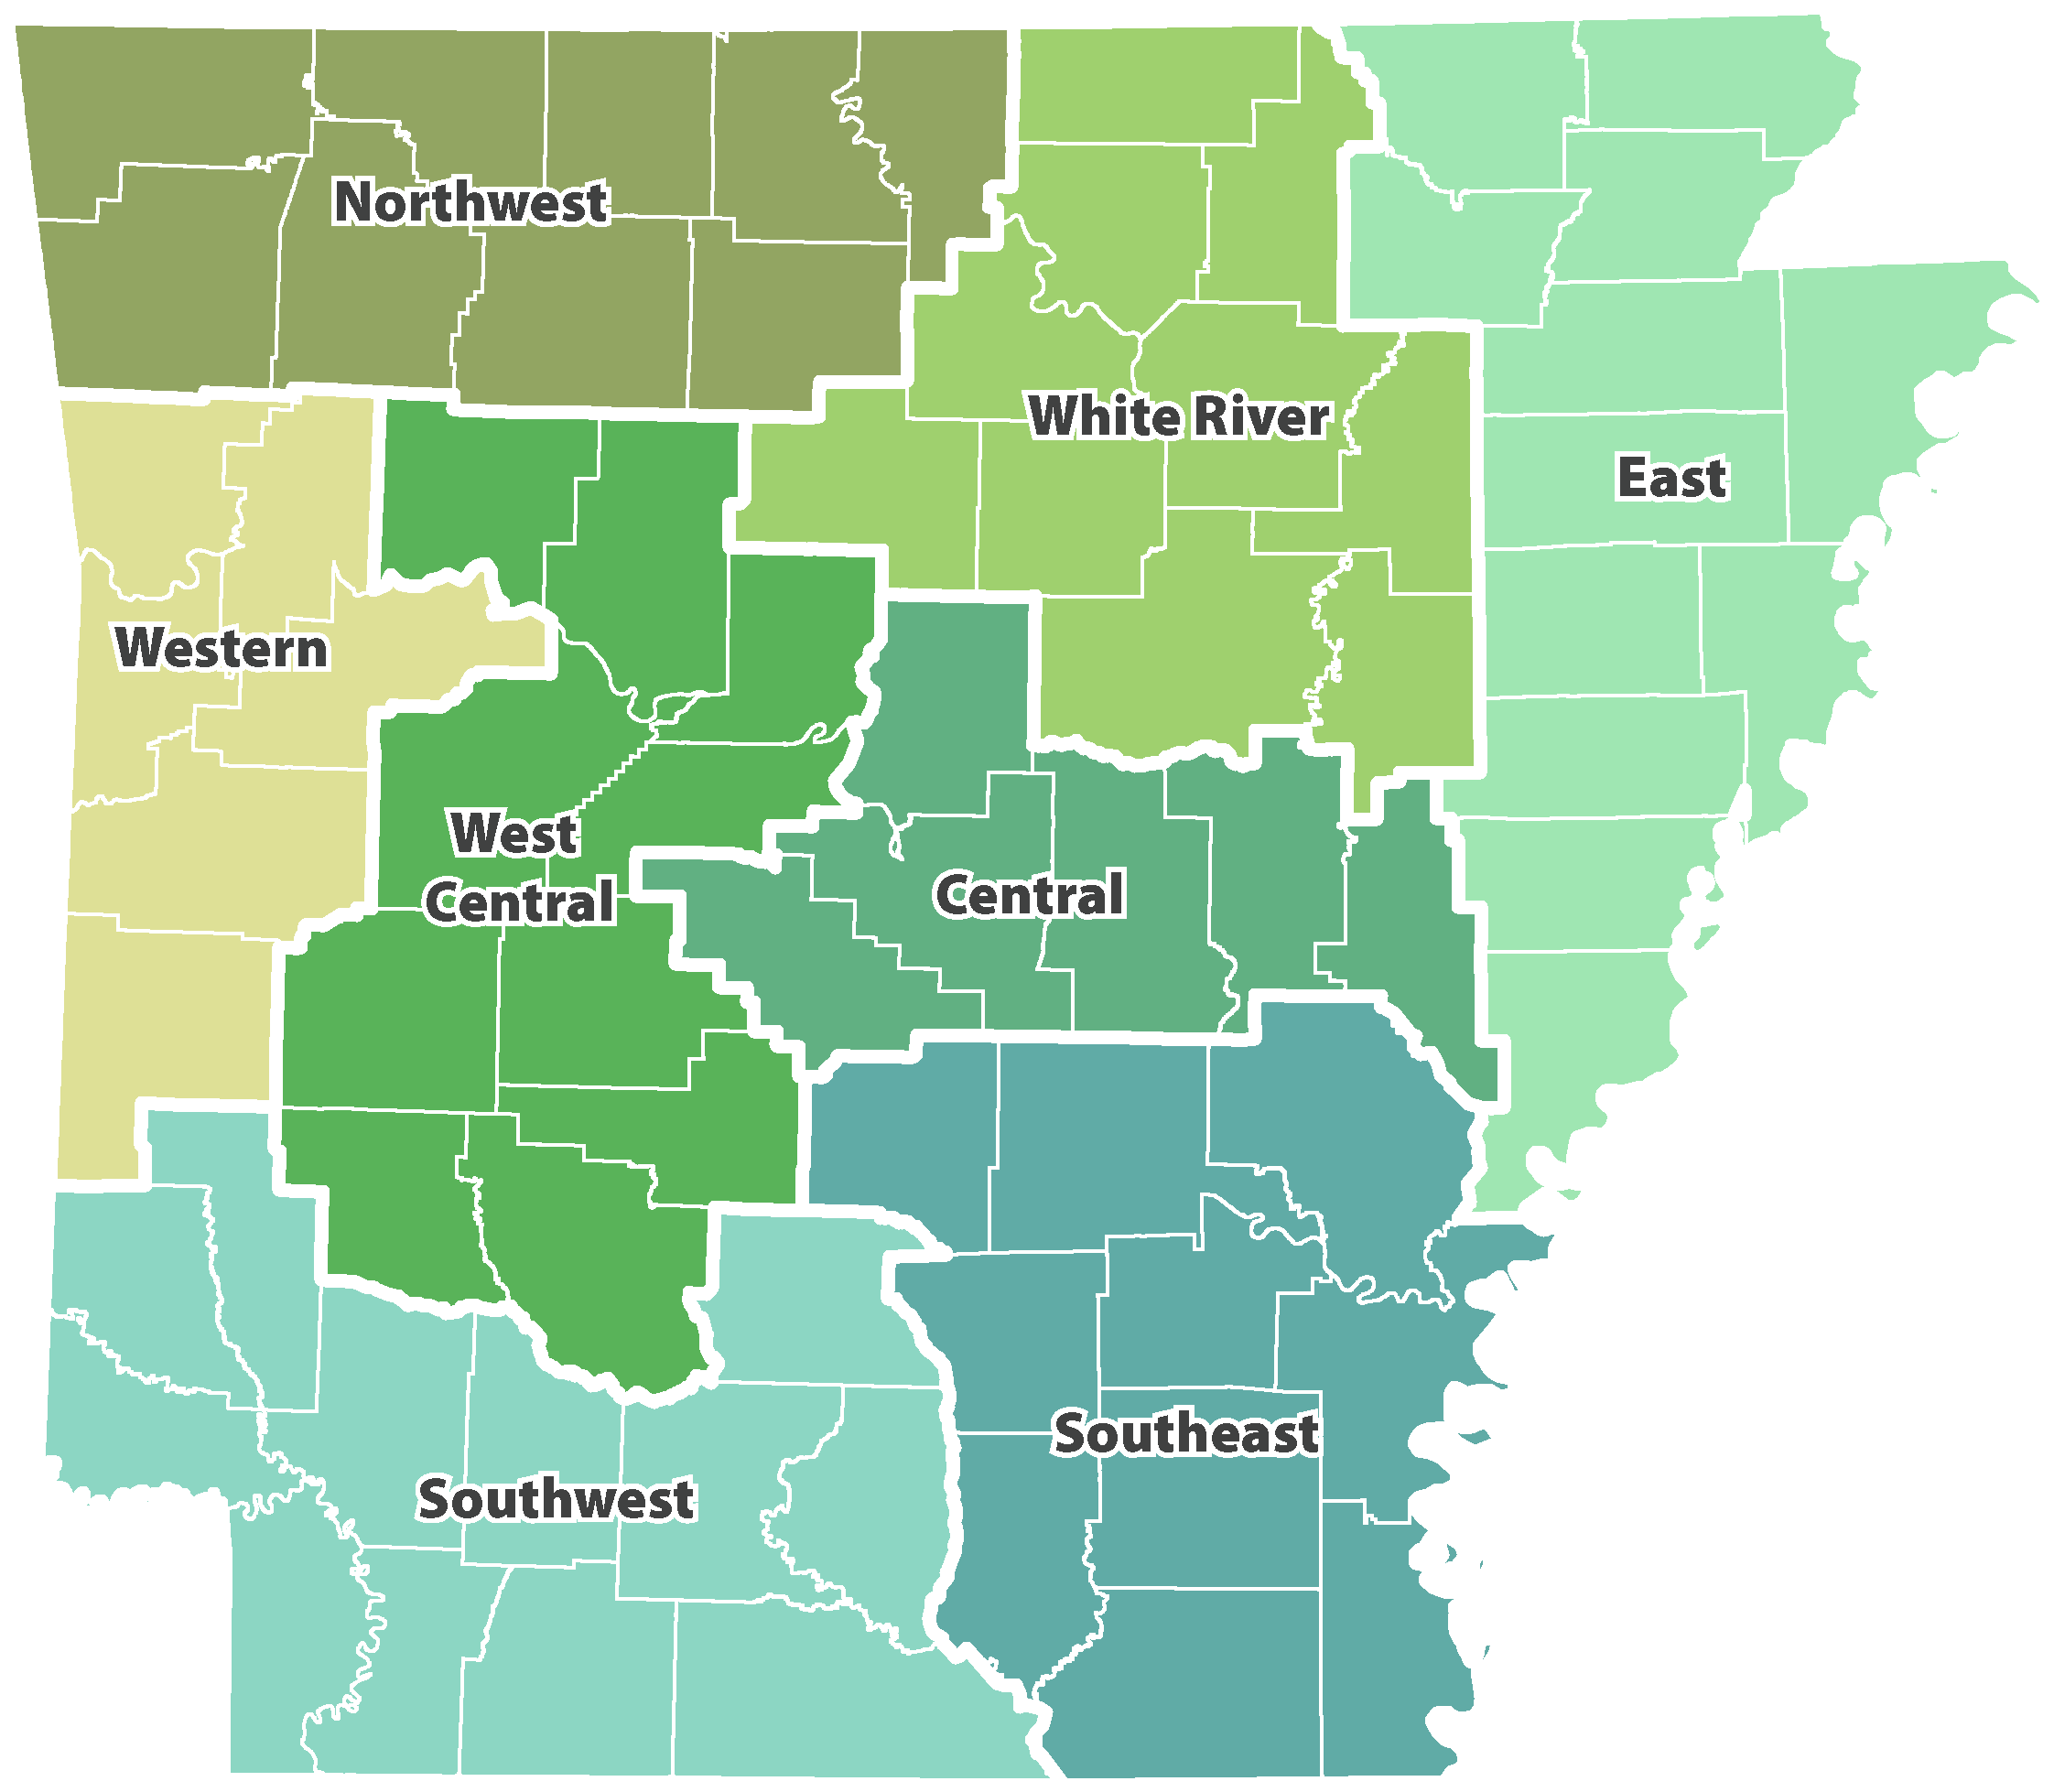 Map of the eight development districts in Arkansas: (in cardinal directions, from northwest to southeast) Northwest, White River, East, Western, West Central, Central, Southwest, and Southeast.